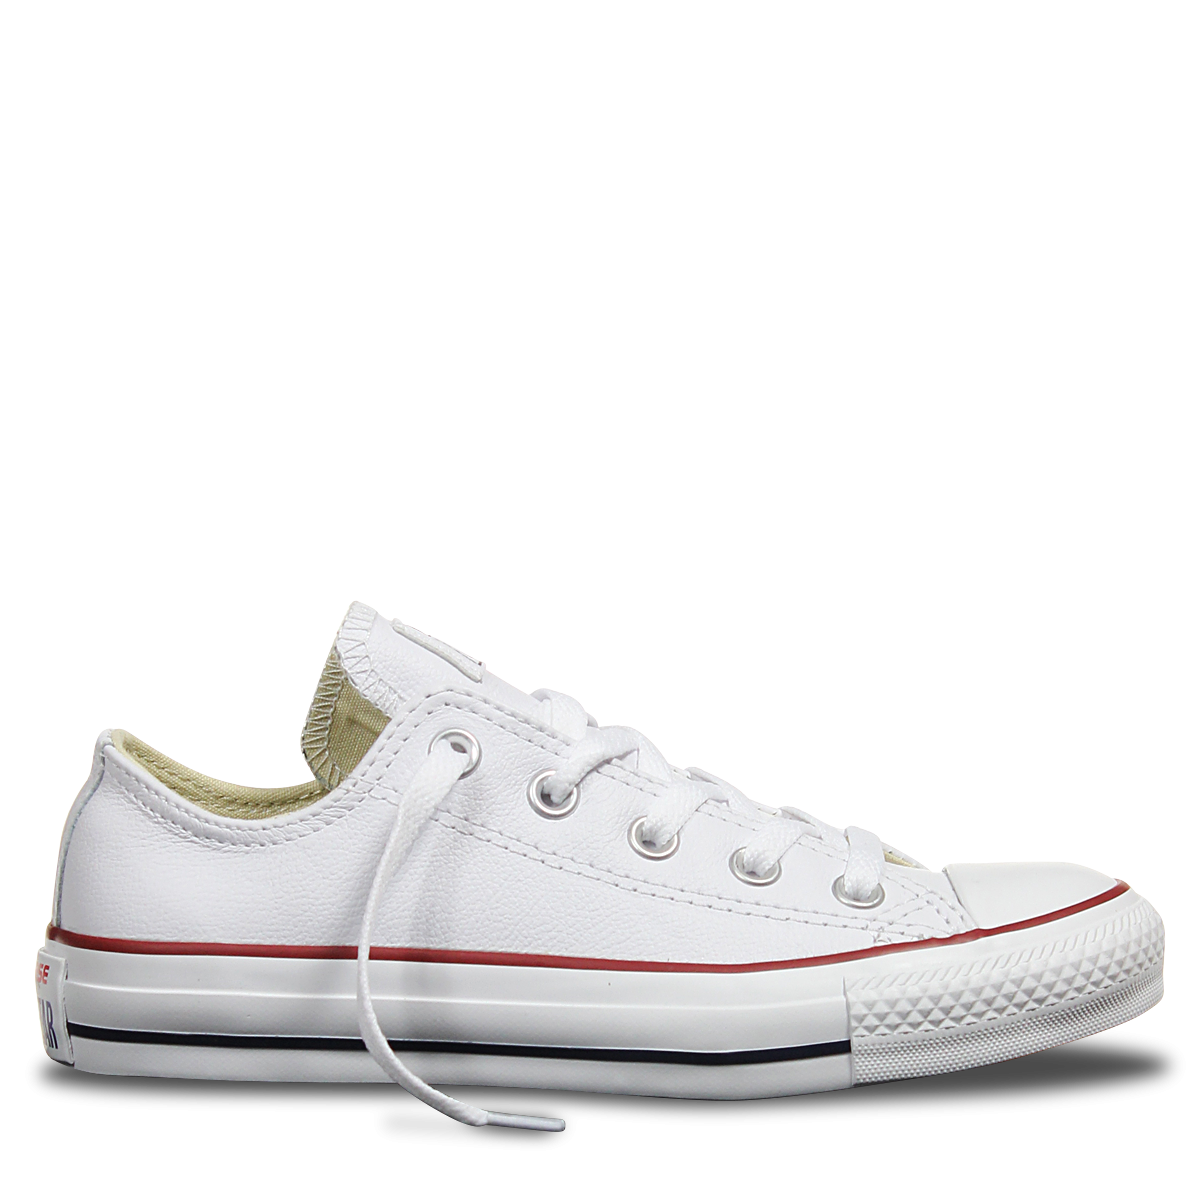 Converse Chuck Taylor All Star Leather Low Top in White